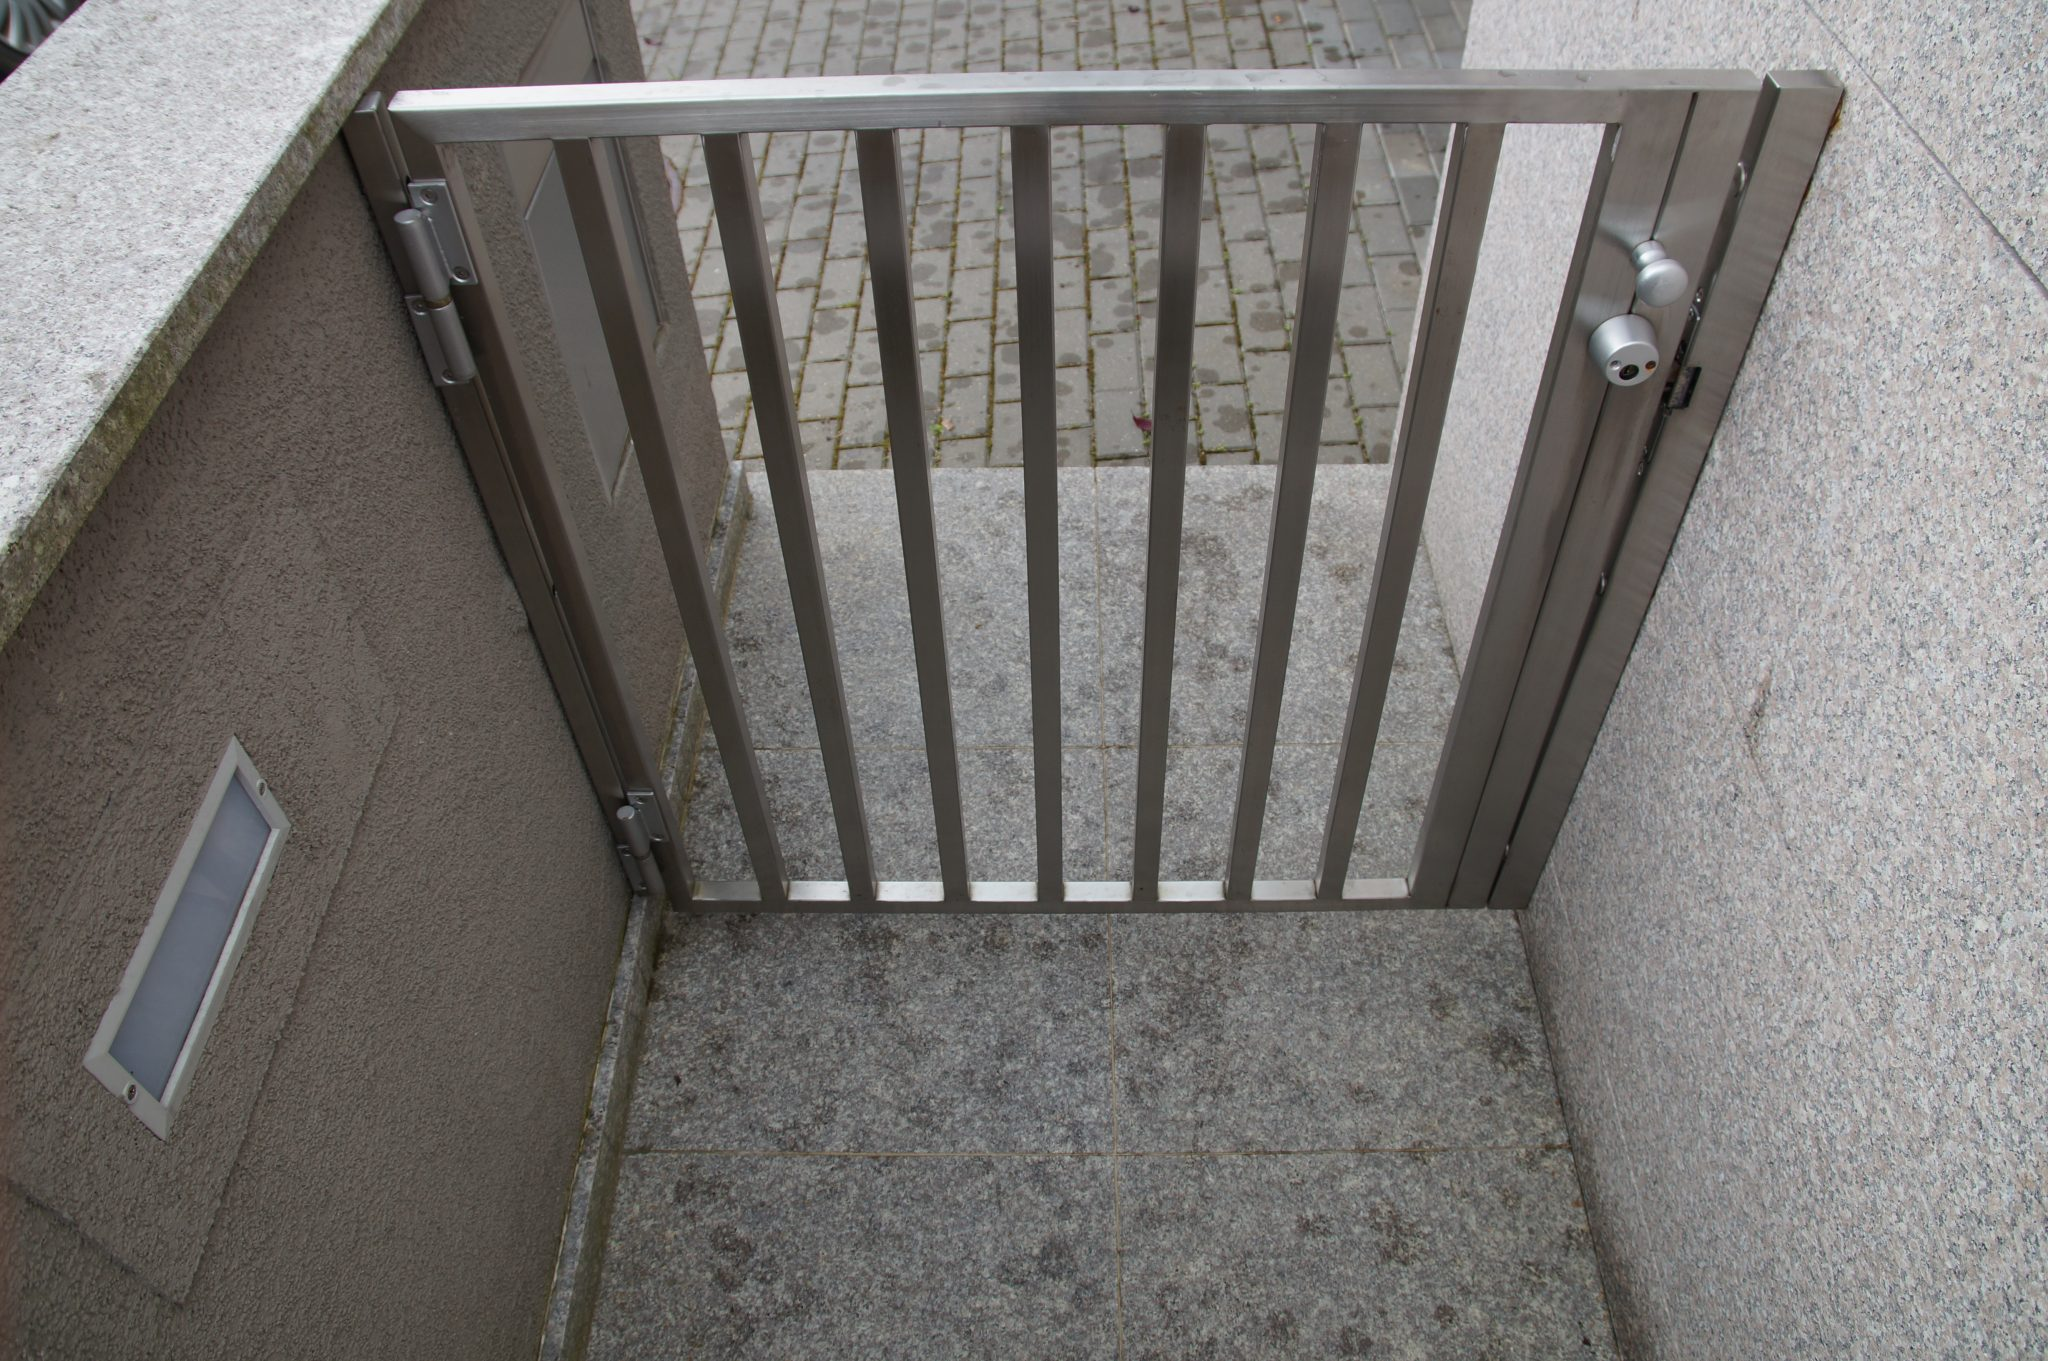 stainless steel gates and fencing in london inox city ltd. Black Bedroom Furniture Sets. Home Design Ideas